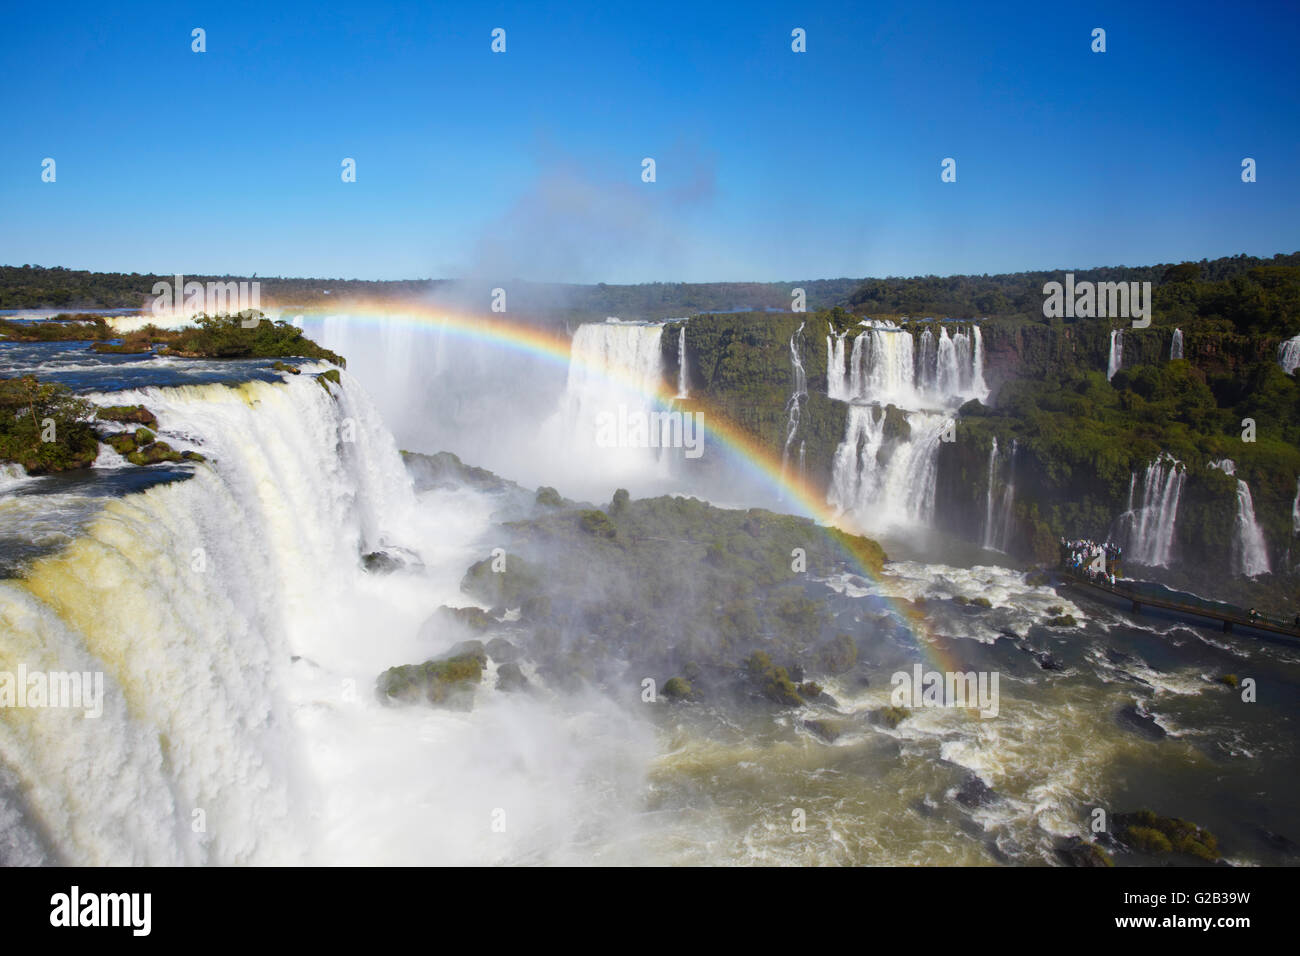 Garganta do Diablo (Devil's Throat) Falls at Iguacu Falls, Iguacu National Park, Parana, Brazil - Stock Image